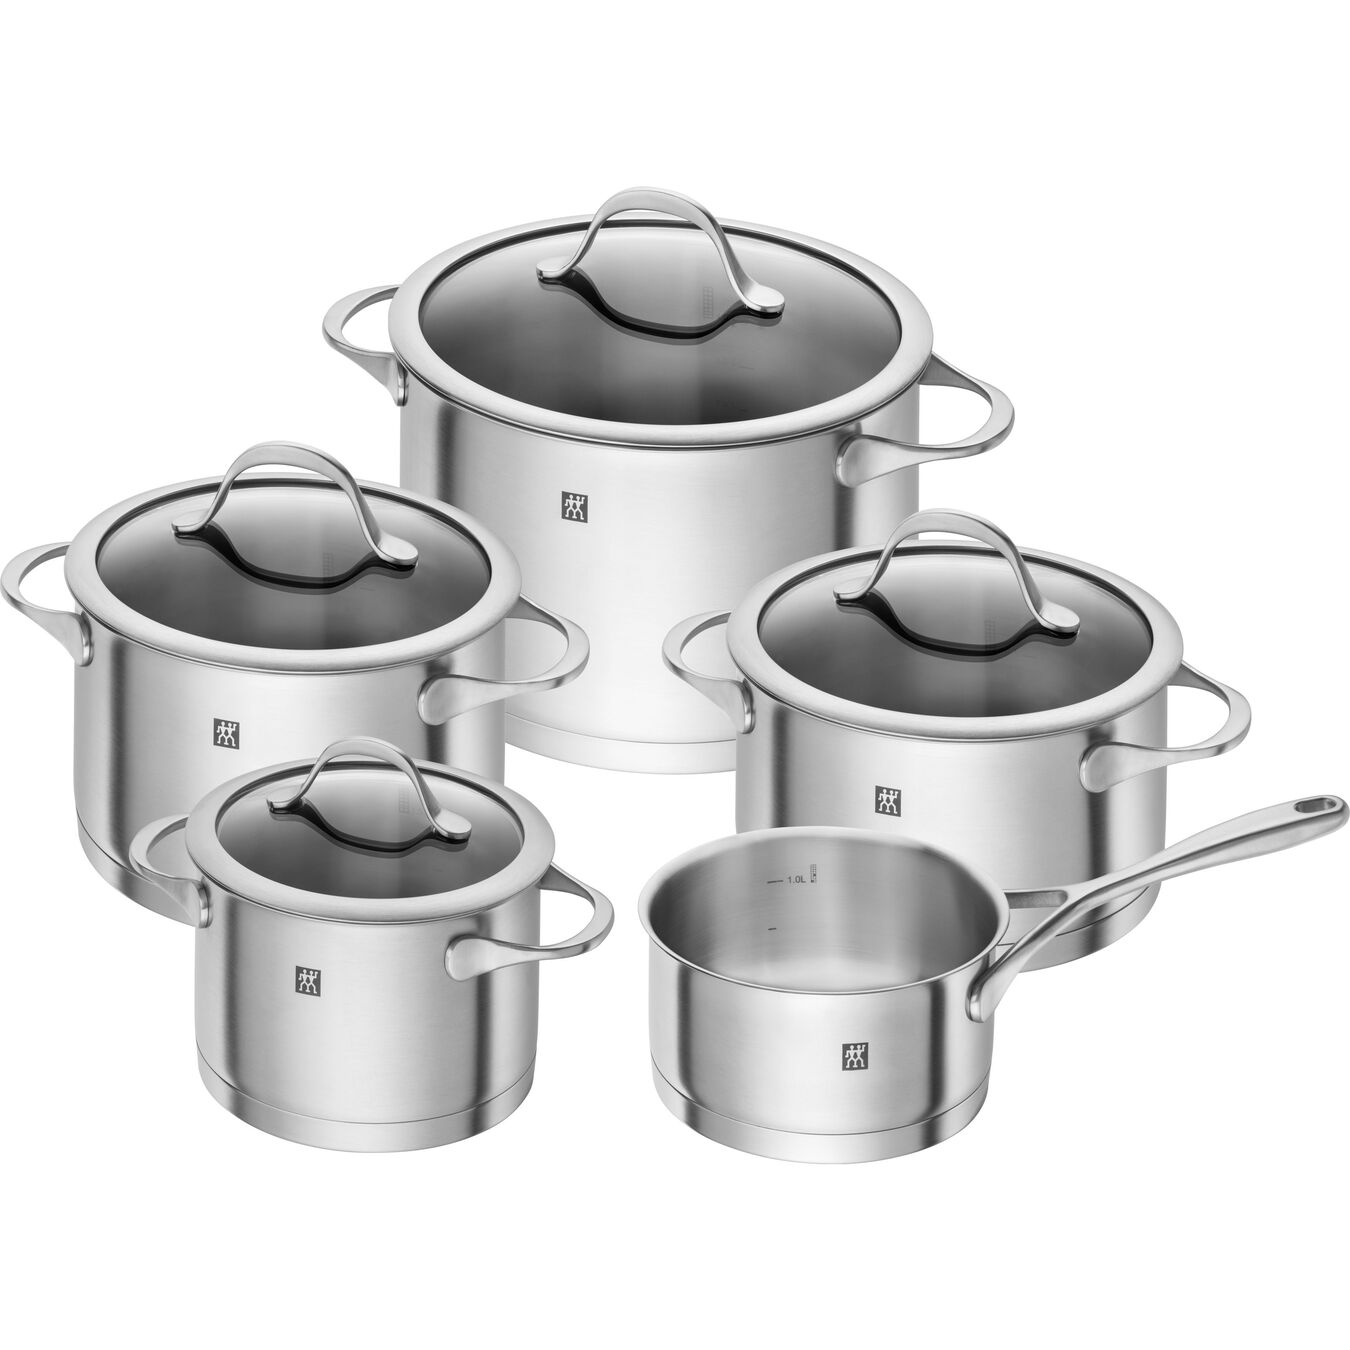 Cookware Set With Bonus Cast Iron French Oven and 8-pc Steak Knives, 10 Piece | round | 18/10 Stainless Steel,,large 1